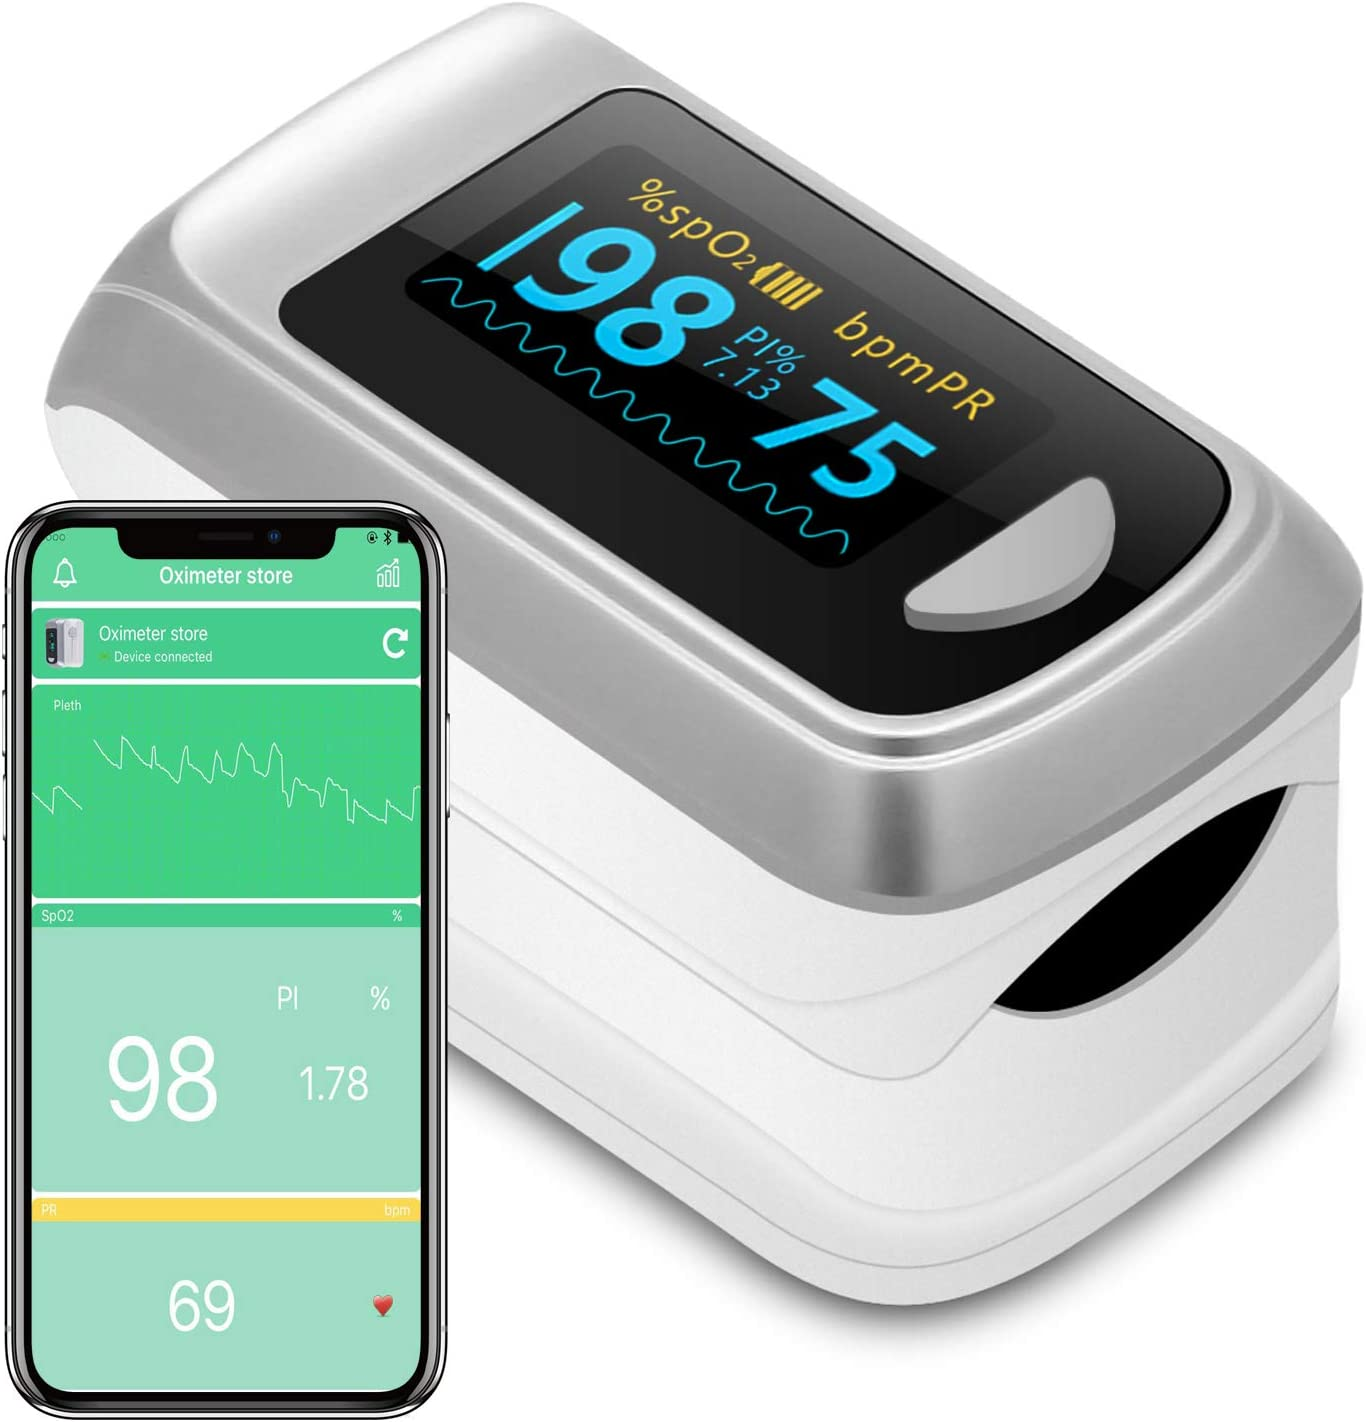 Bluetooth Fingertip Pulse Oximeter Oximetry Blood Oxygen Saturation Monitor and Pulse Rate Monitor for Apple and Android